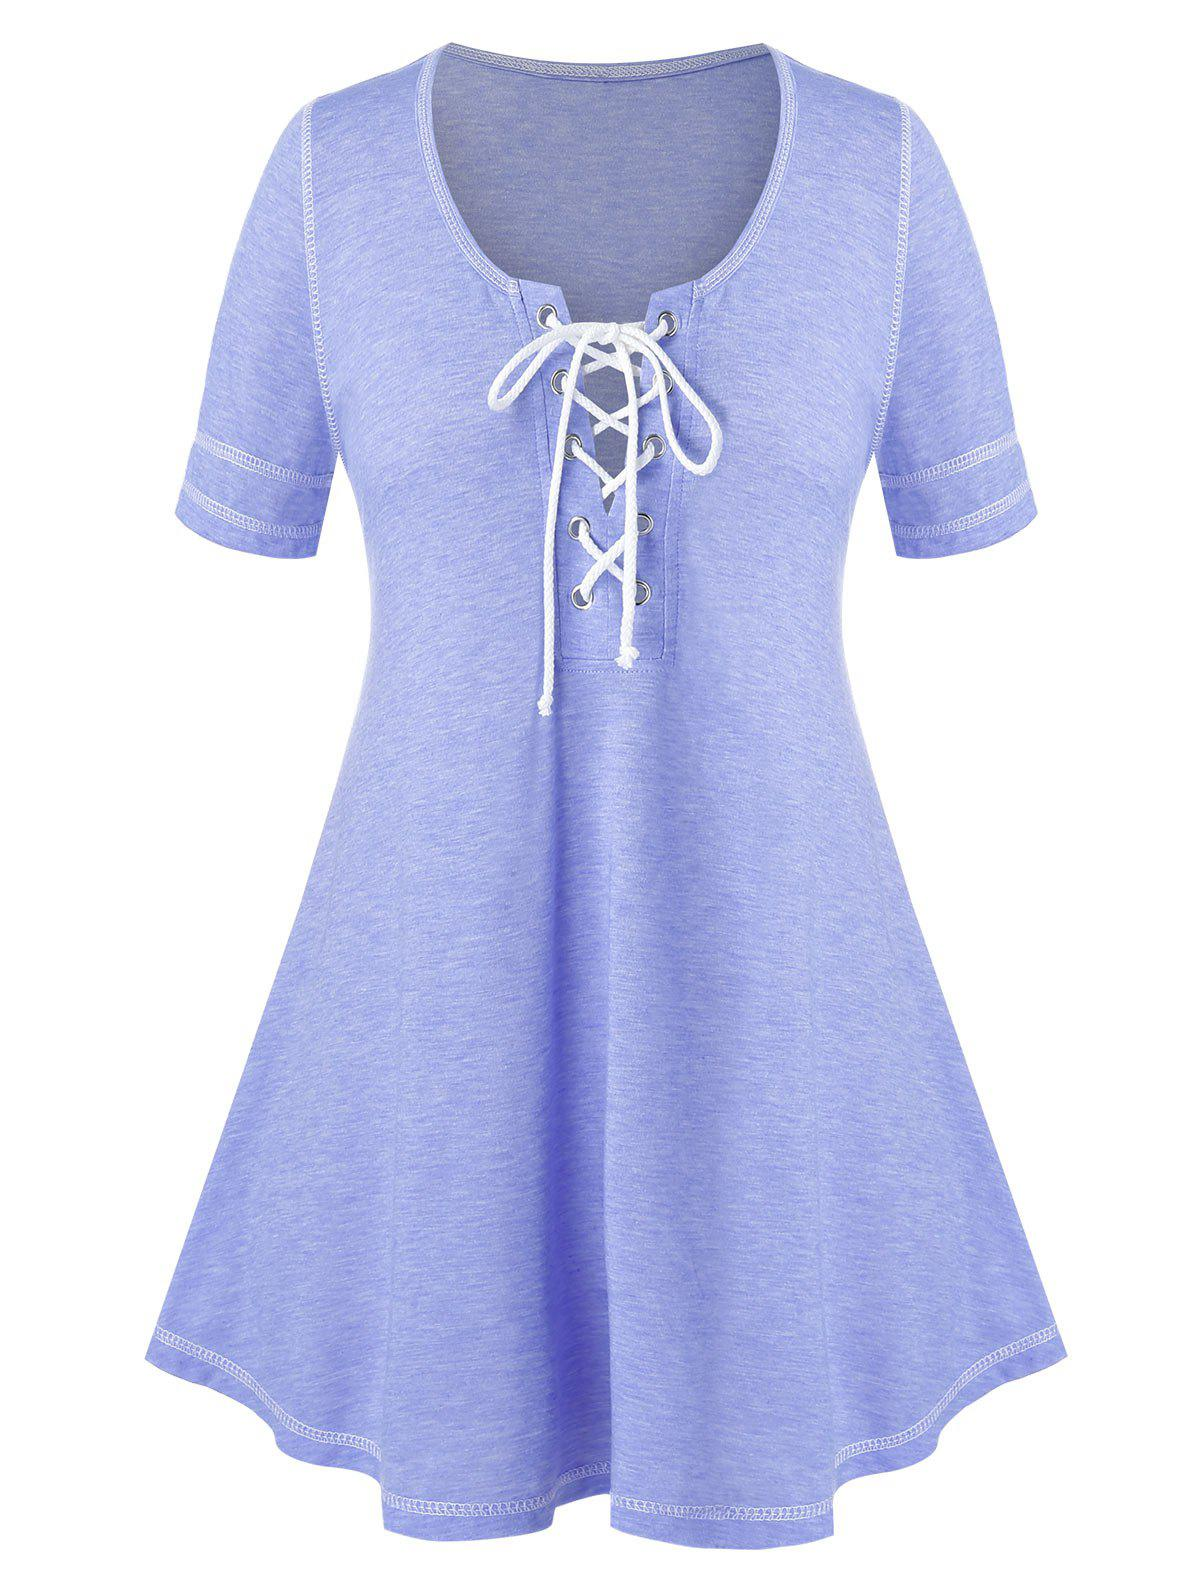 Fancy Plus Size Lace Up Heathered Swing T Shirt